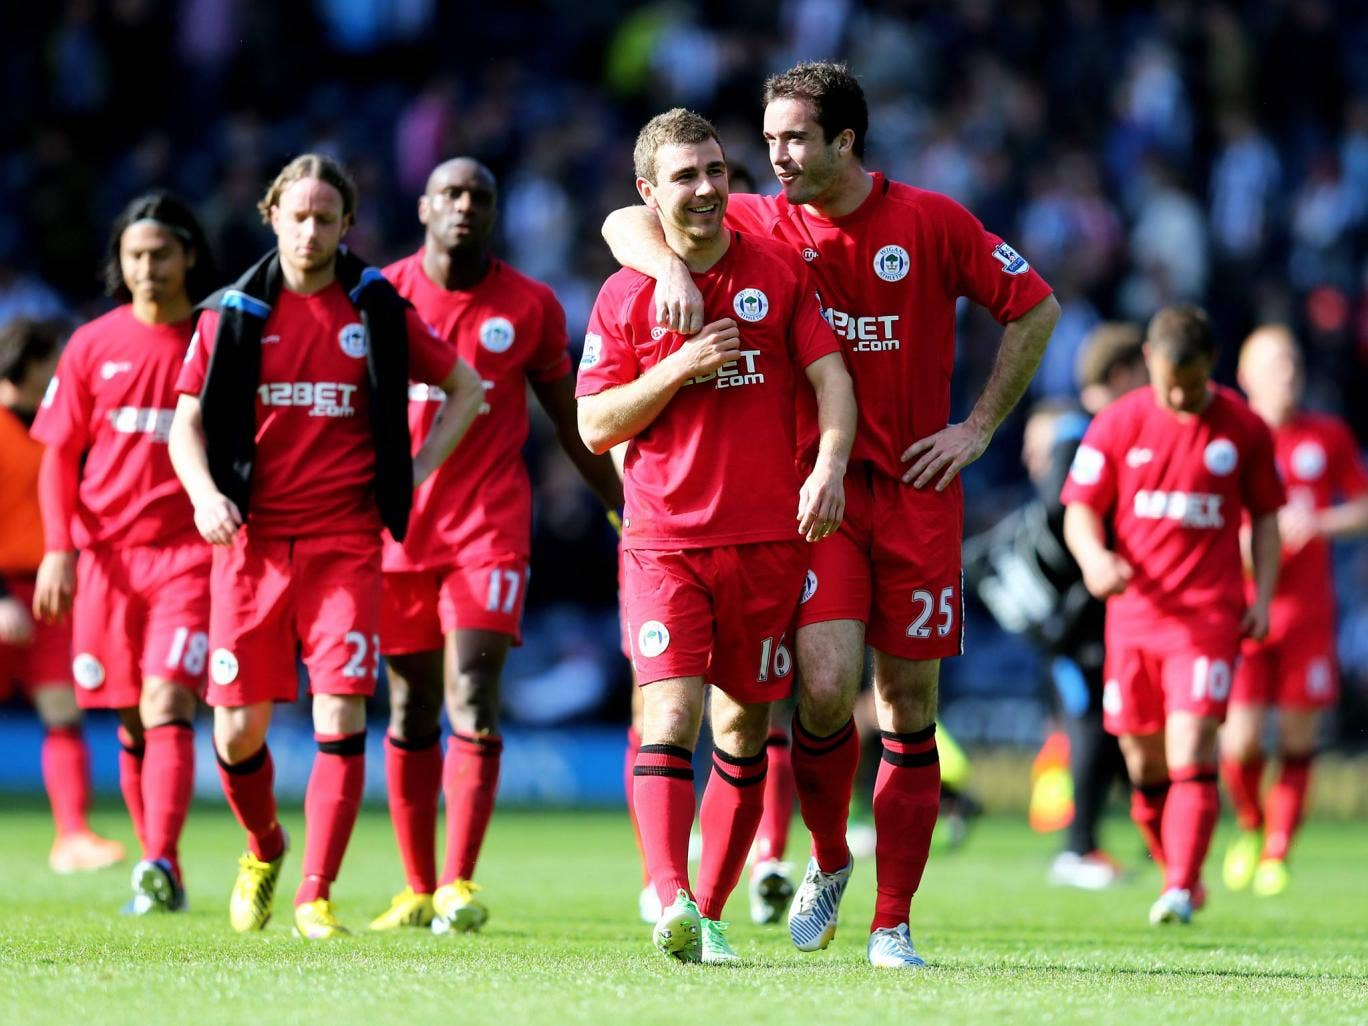 James McArthur and Roman Golobart of Wigan celebrate their team's 3-2 victory over West Brom